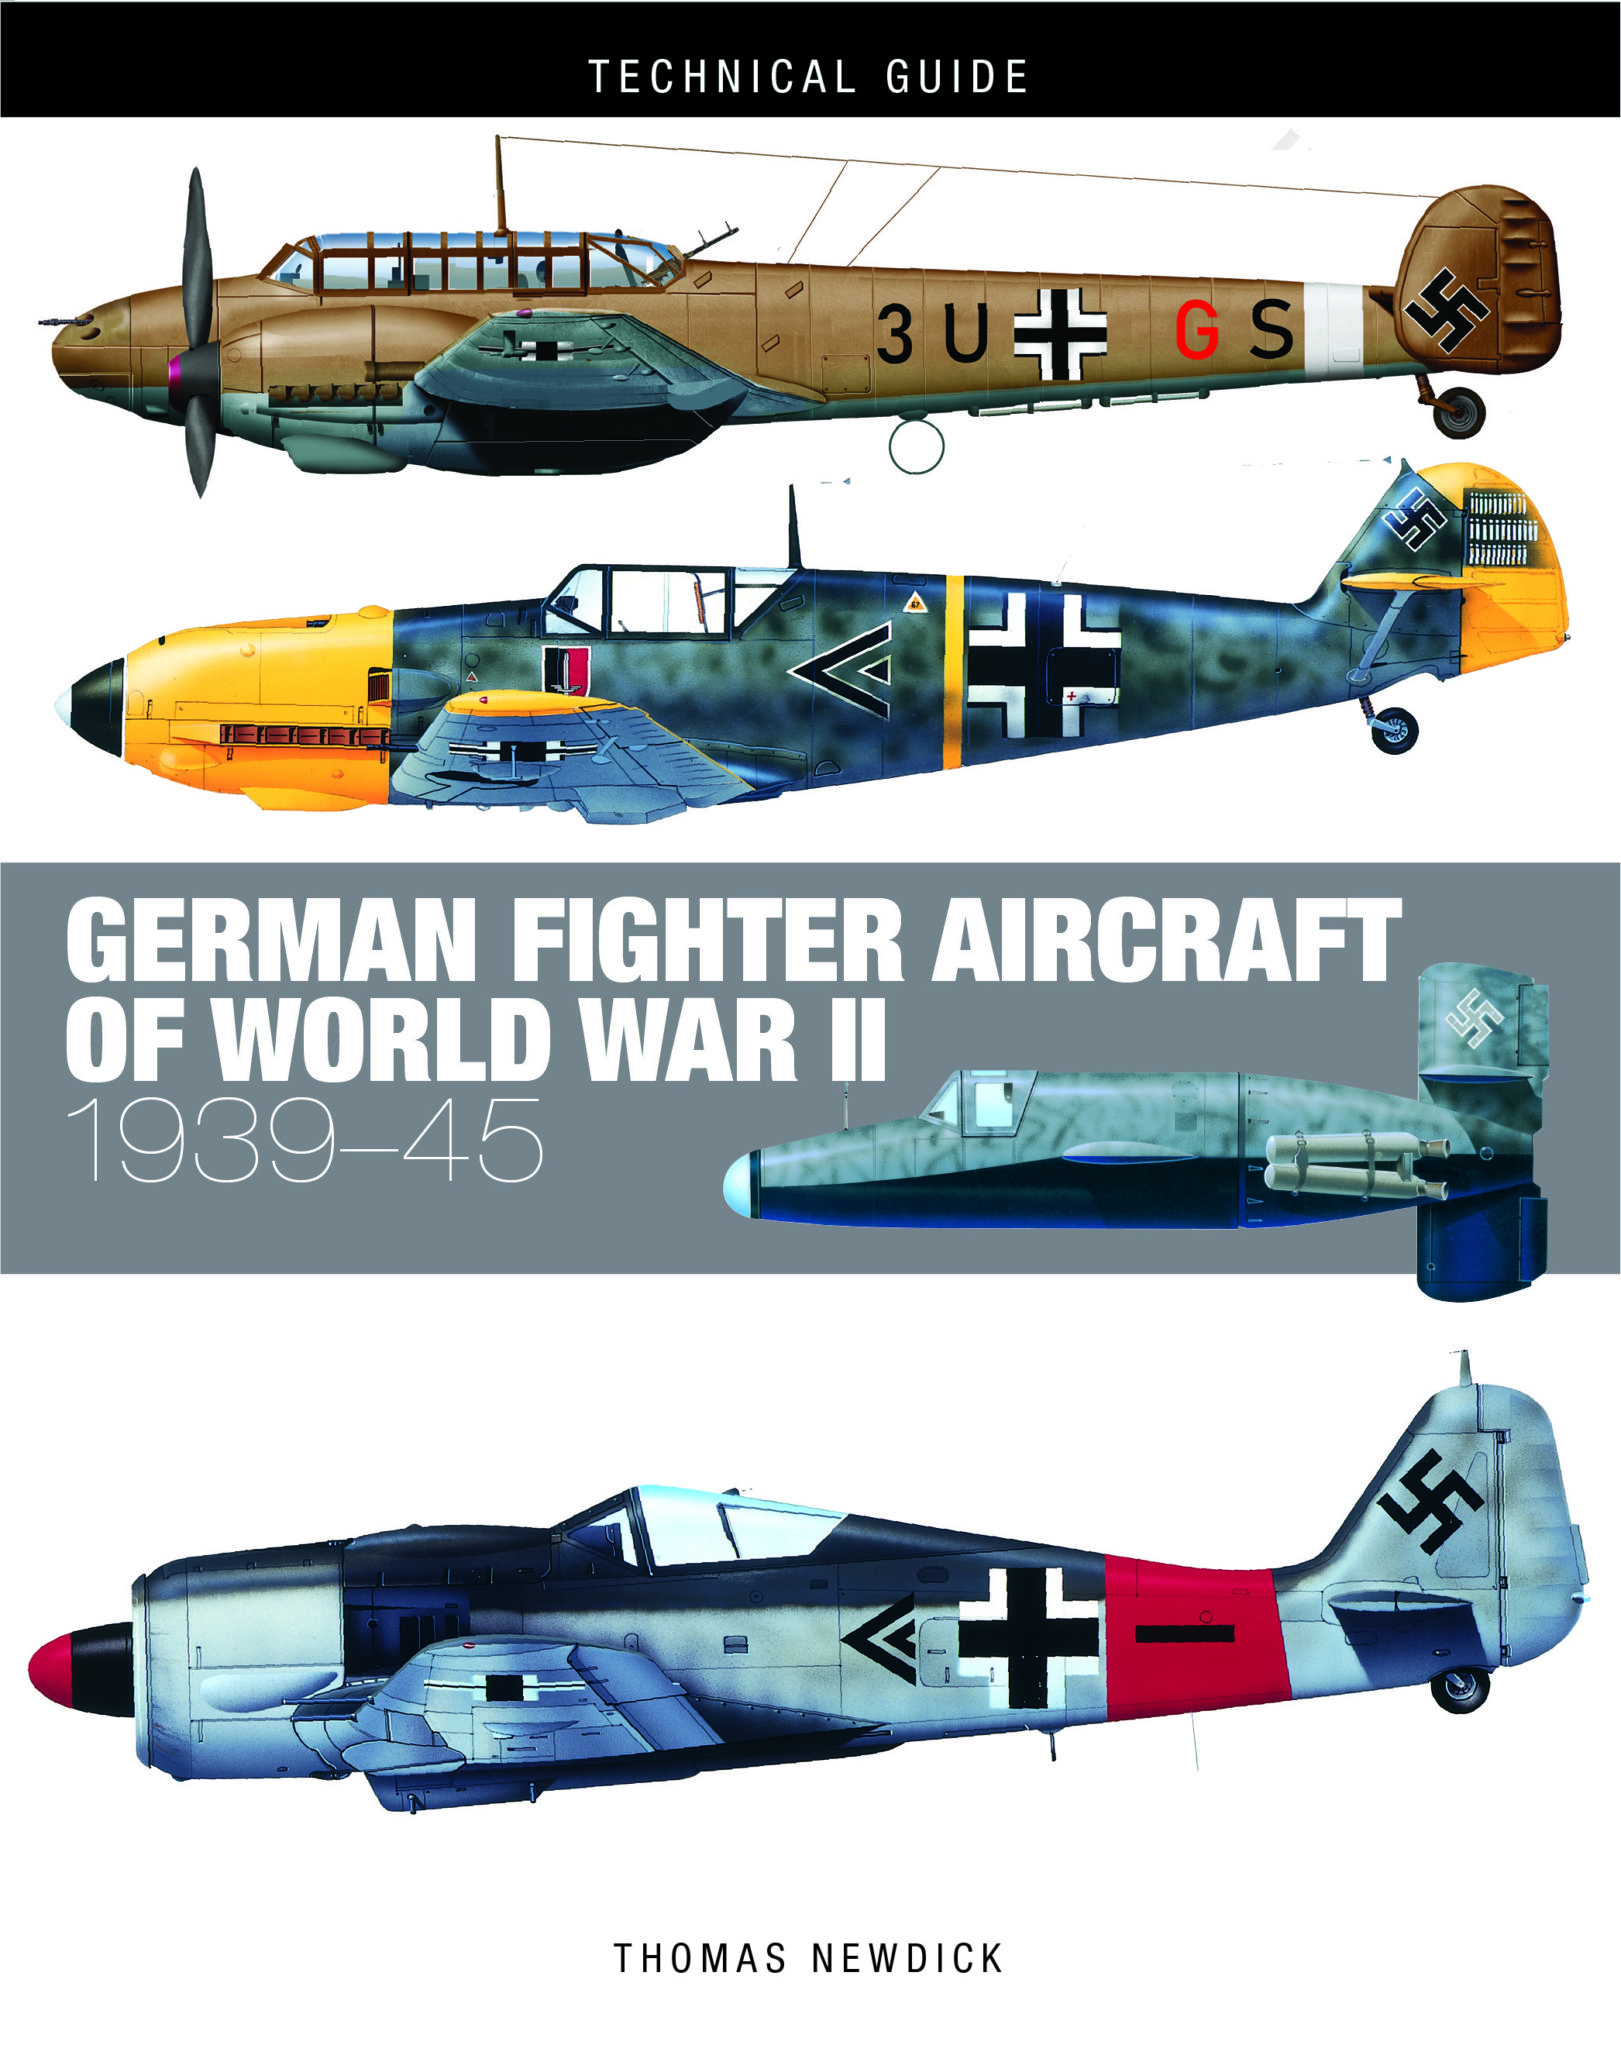 German Fighter Aircraft of World War II: Technical Guide [128pp]